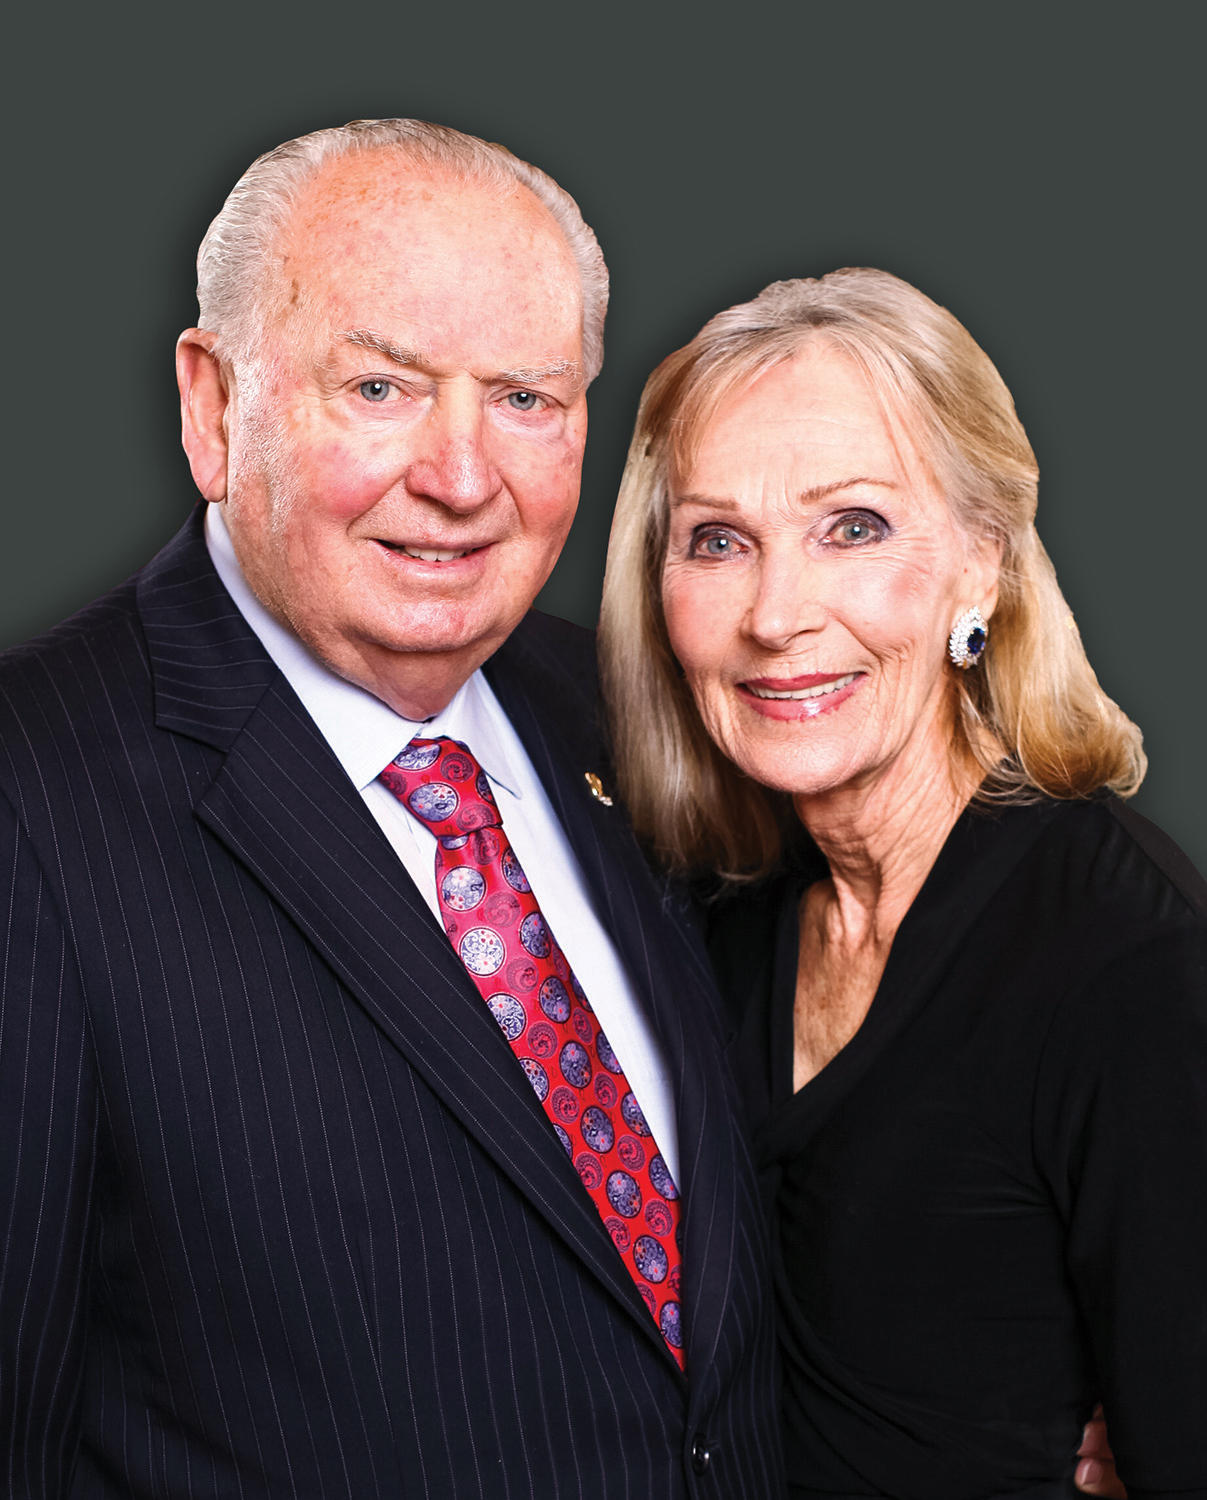 A portrait photo of the Maughans.